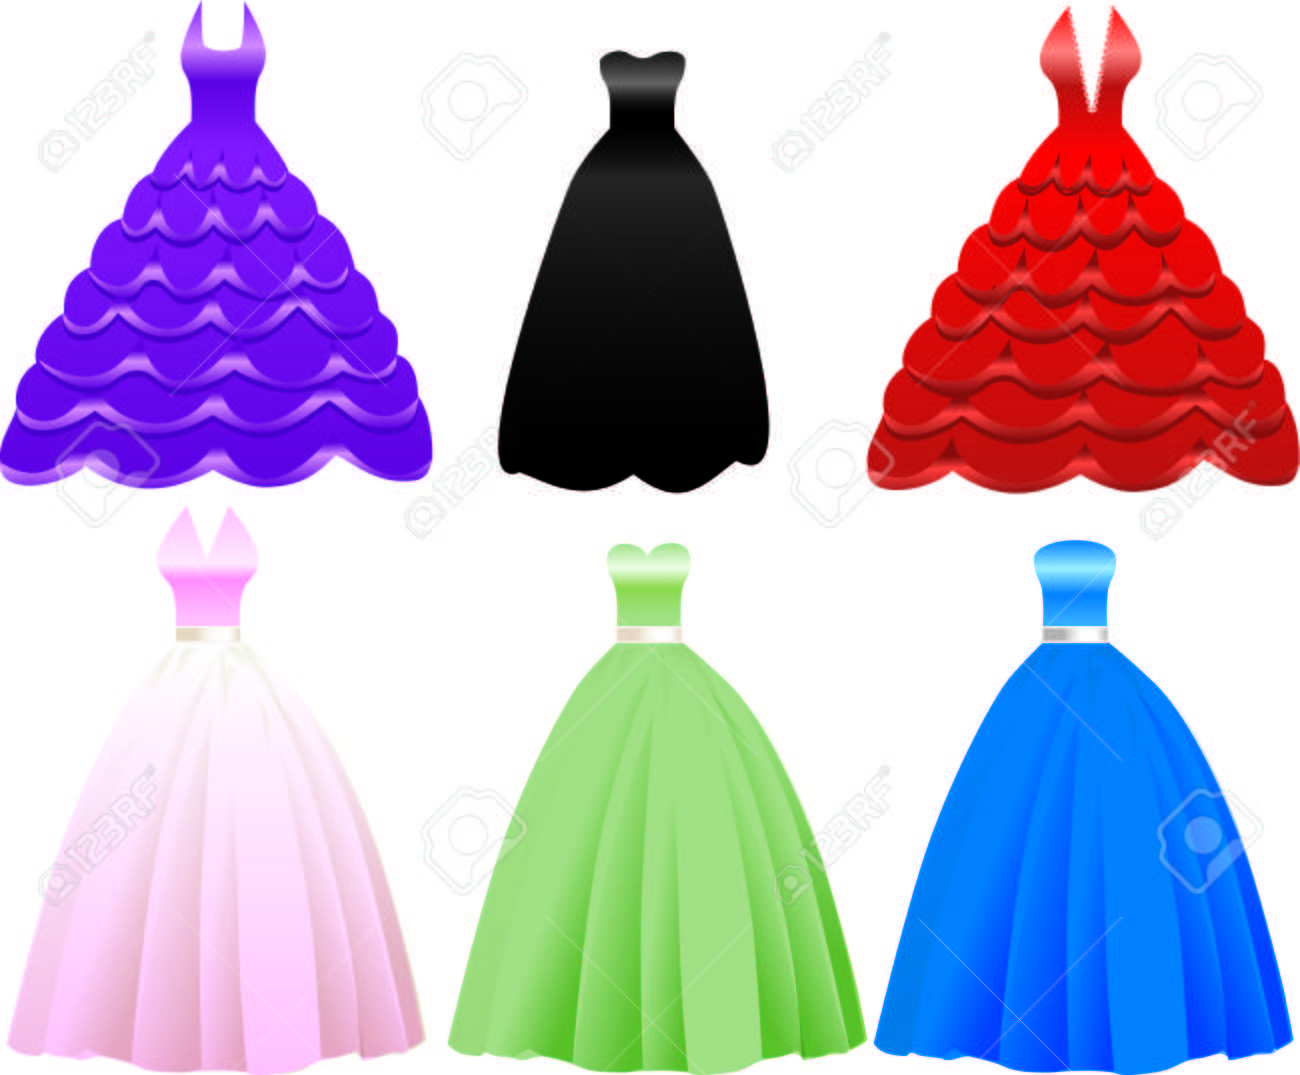 642 Prom Dress Cliparts, Stock Vector And Royalty Free Prom Dress ...